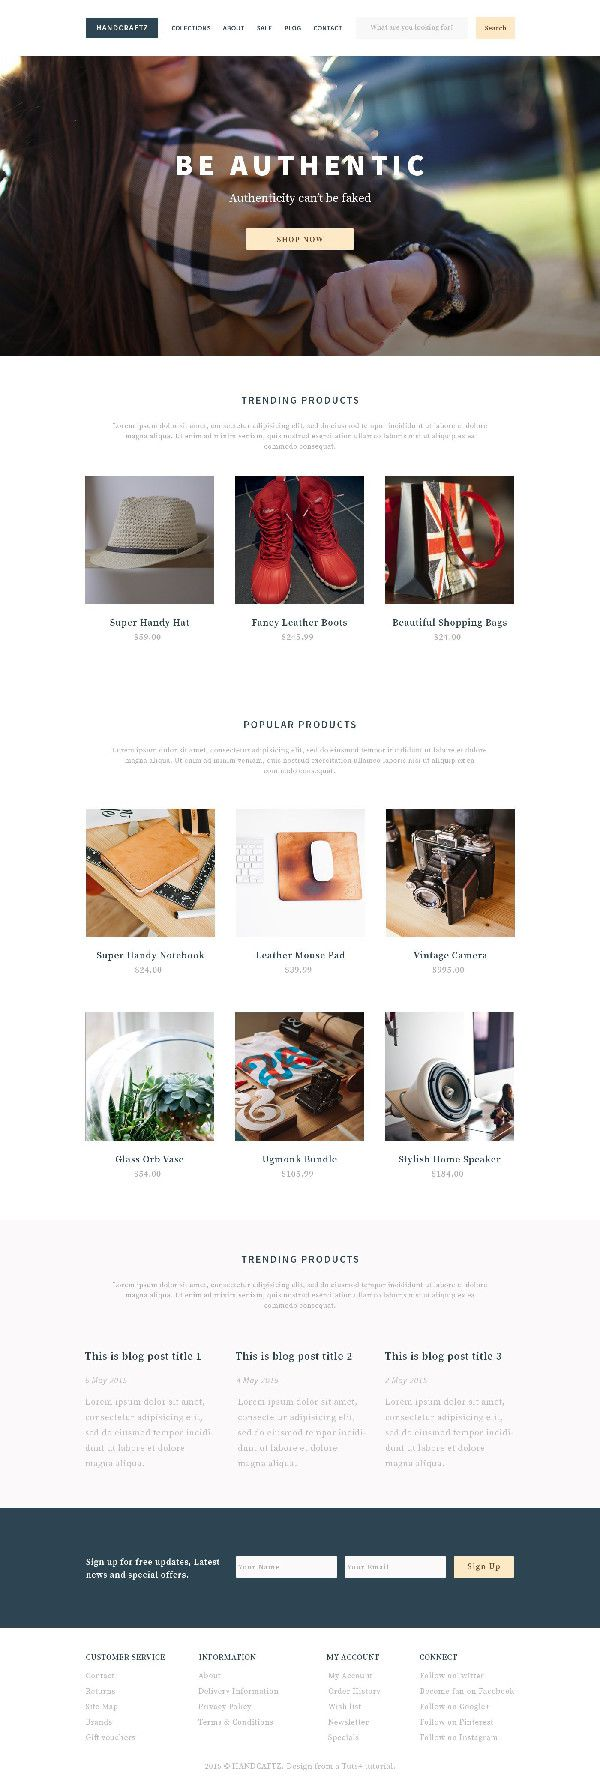 Fathia Gamal shared her own take on a shopify theme from a tutorial by Tomas Laurinavicius